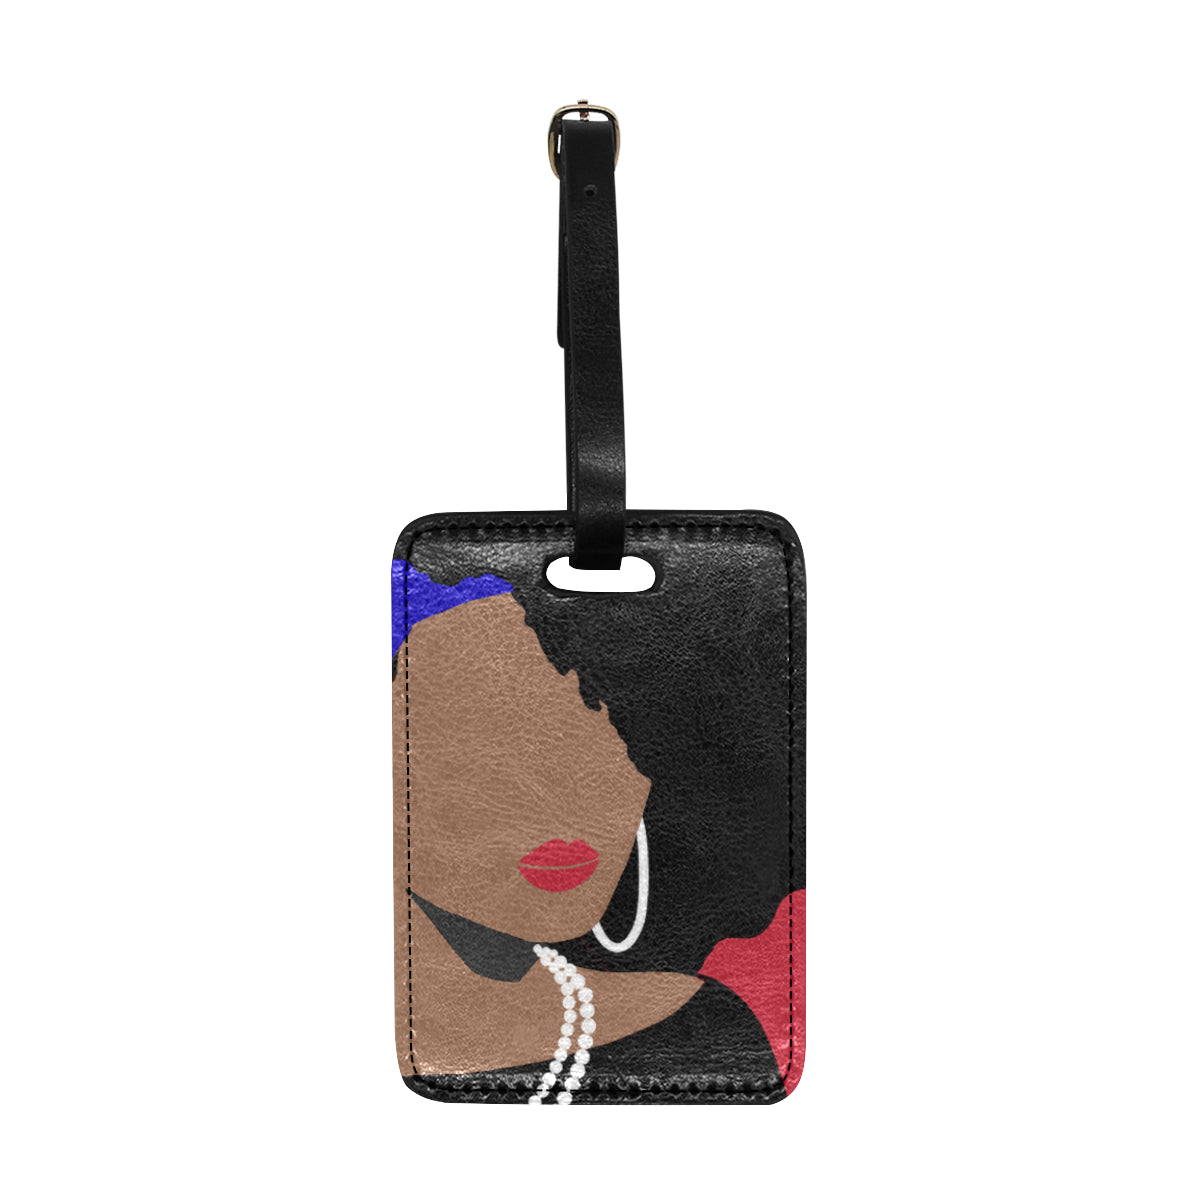 Bougie Brittany 1882 Luggage Tag